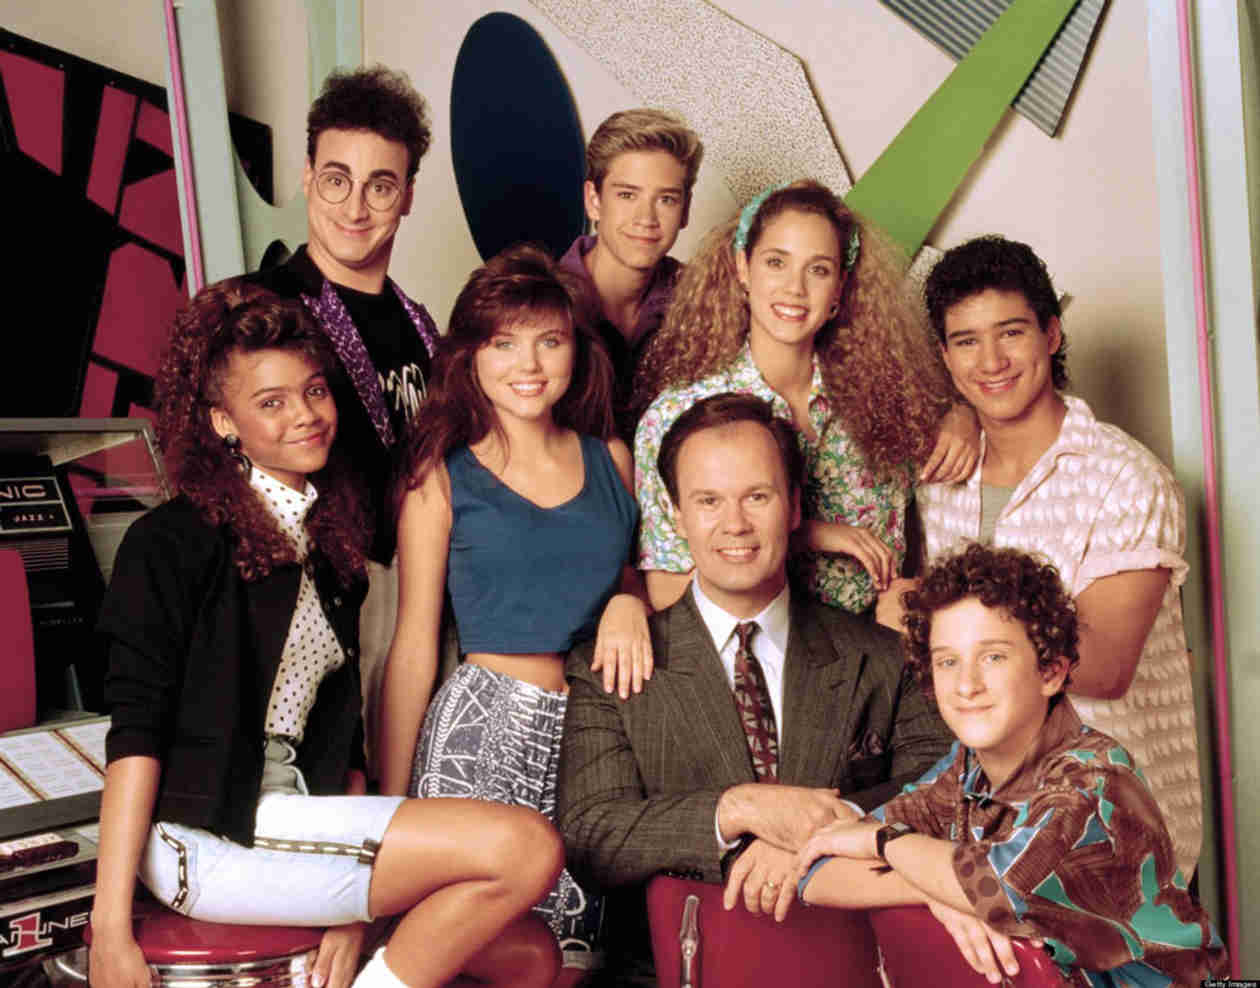 The Unauthorized Saved By the Bell Story Airing on Lifetime This Fall — Will You Watch? (VIDEO)